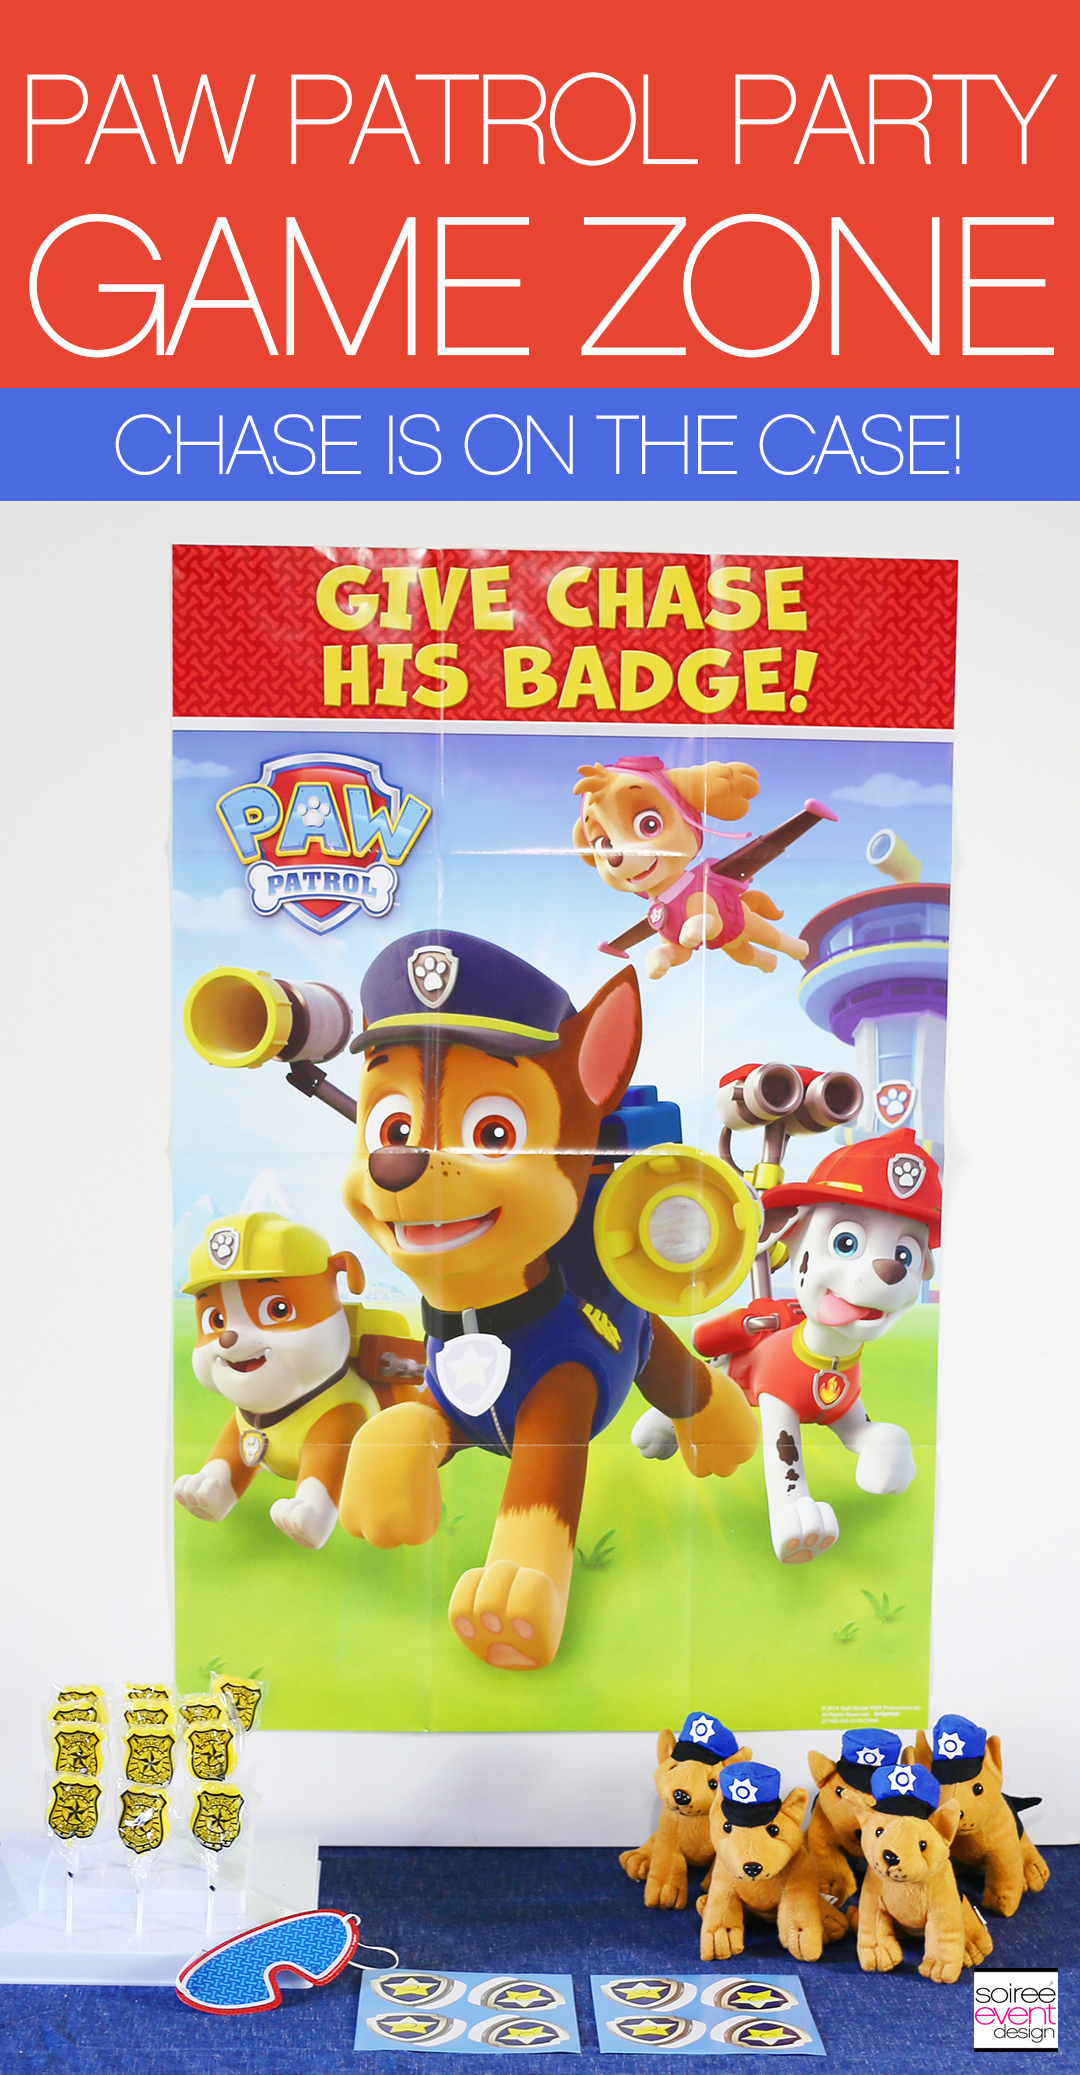 Paw Patrol Party Games - Chase is on the Case